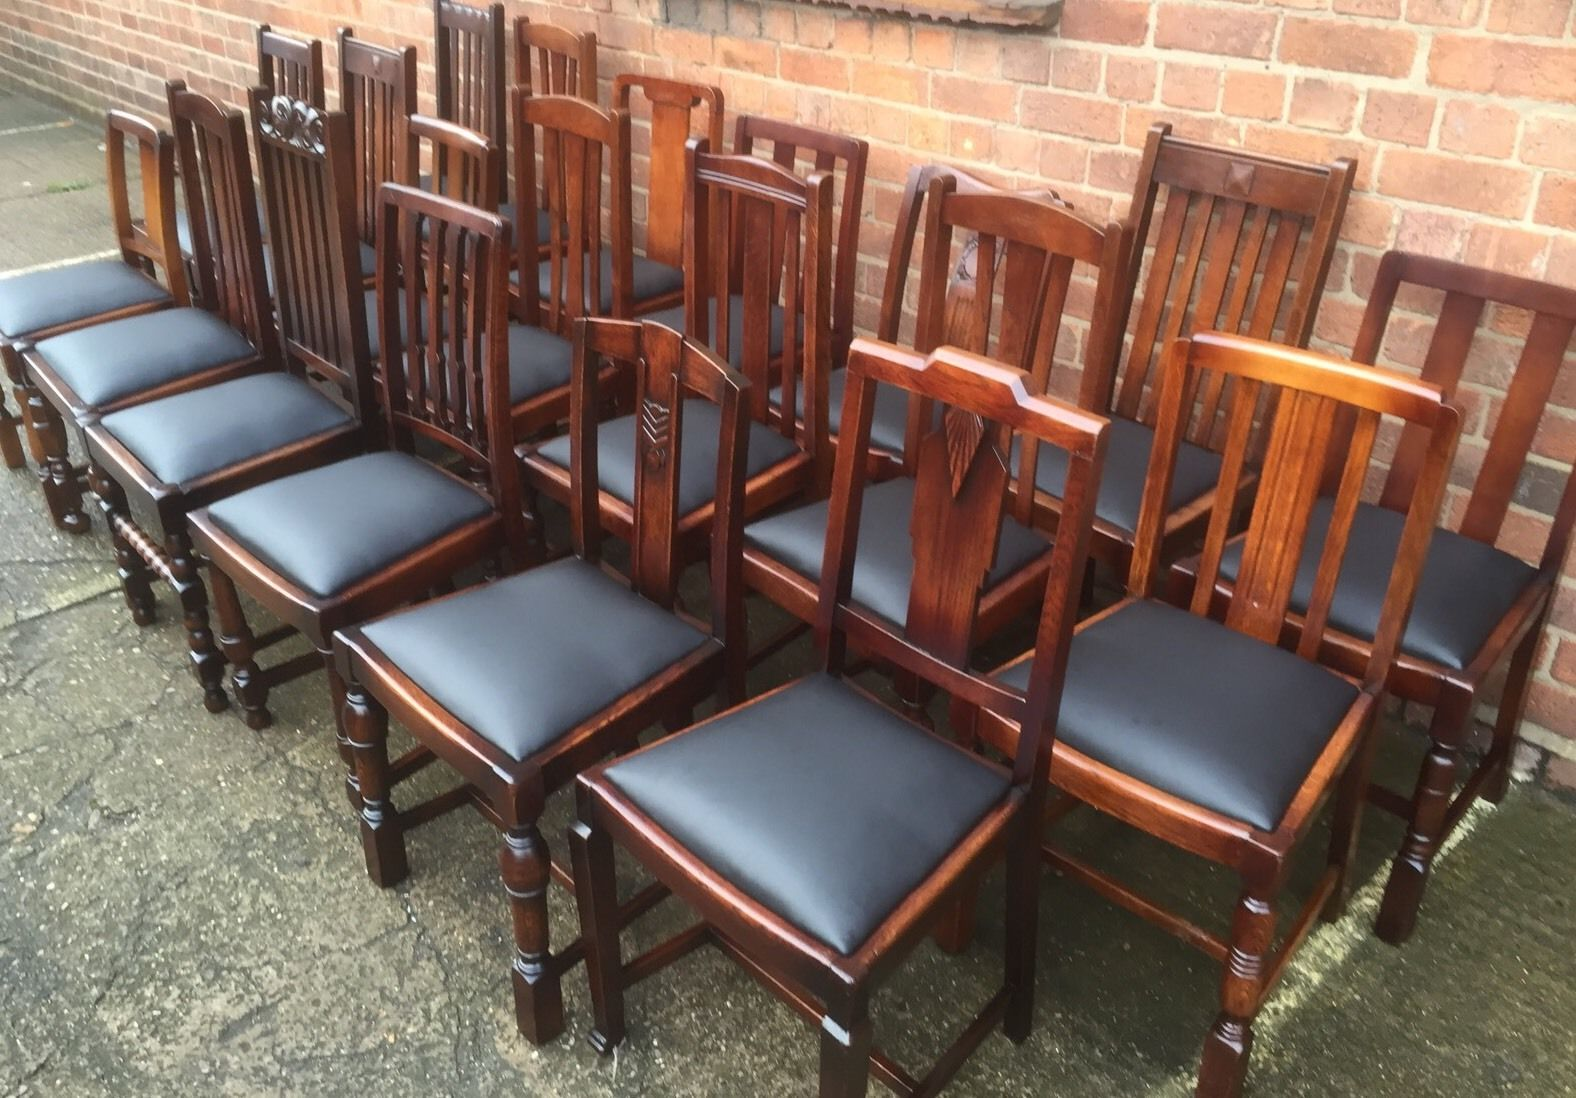 Refurbished Chairs Collection Of Oak 1920s Refurbished Dining Chairs For Pubs Restaurants Etc